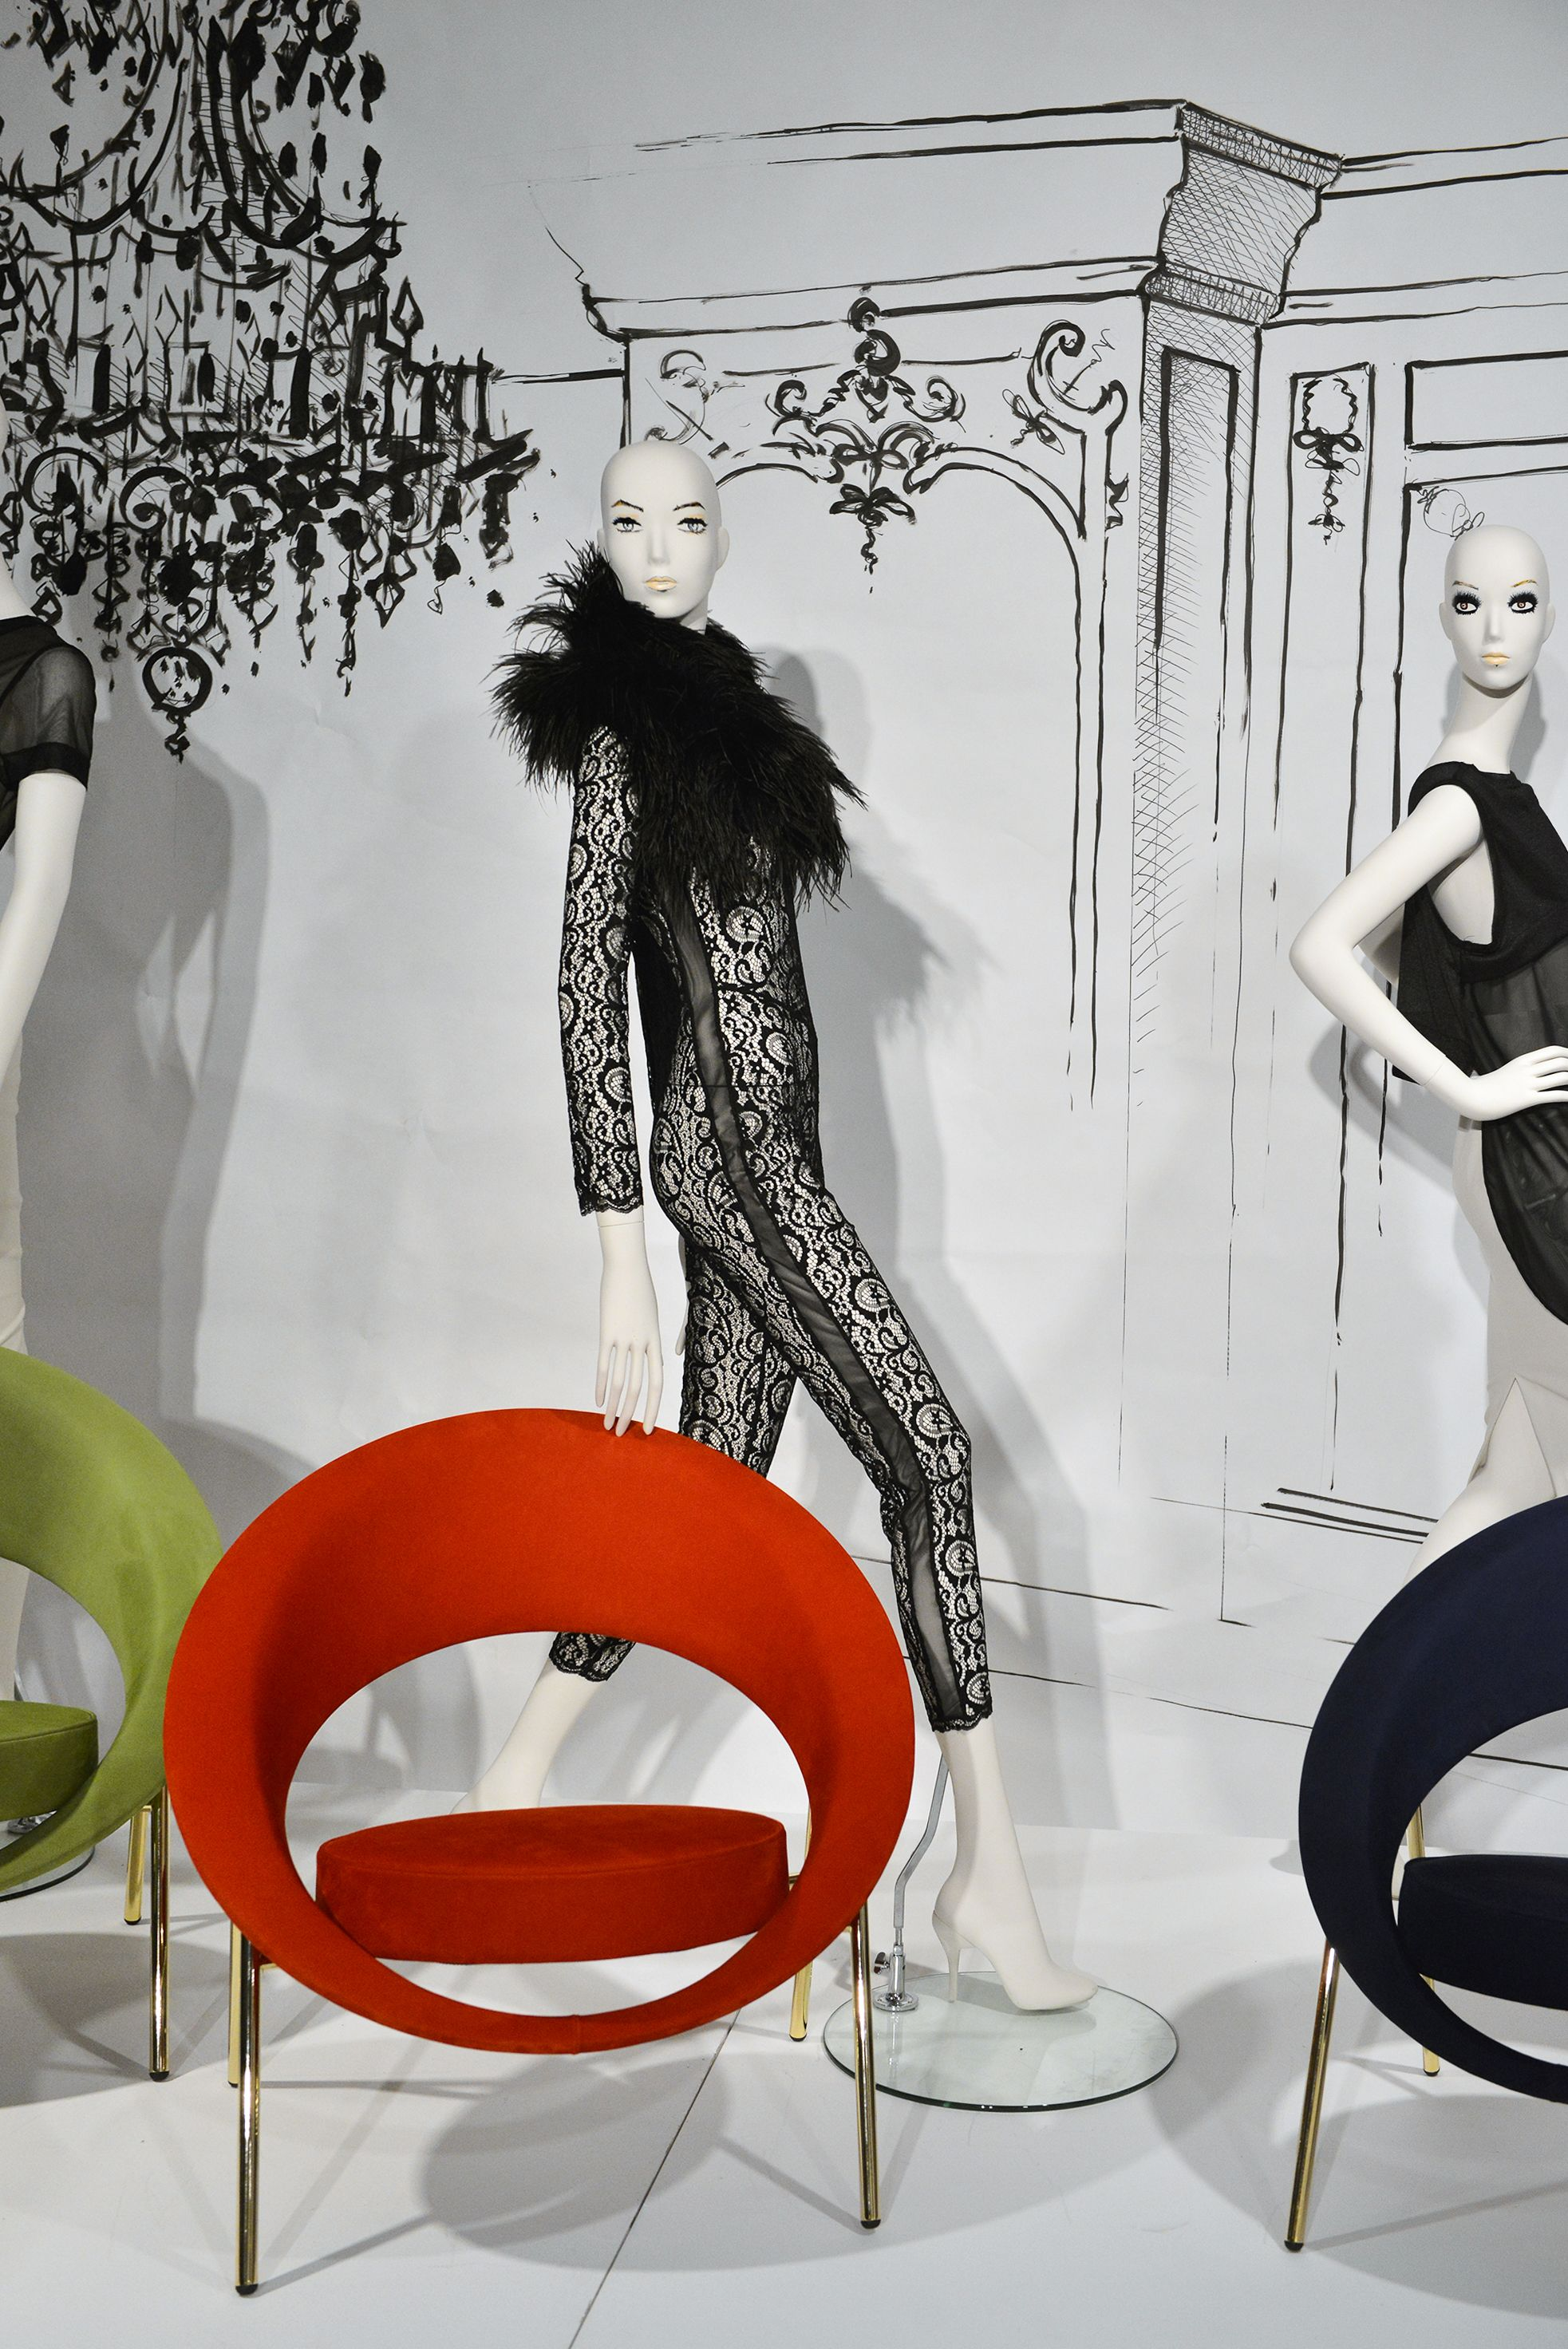 For The Paris Design Week Cofrad Mannequins Welcome In Its Showroom The Designer Of French Furniture Burov On Paris Design French Furniture Furniture Design